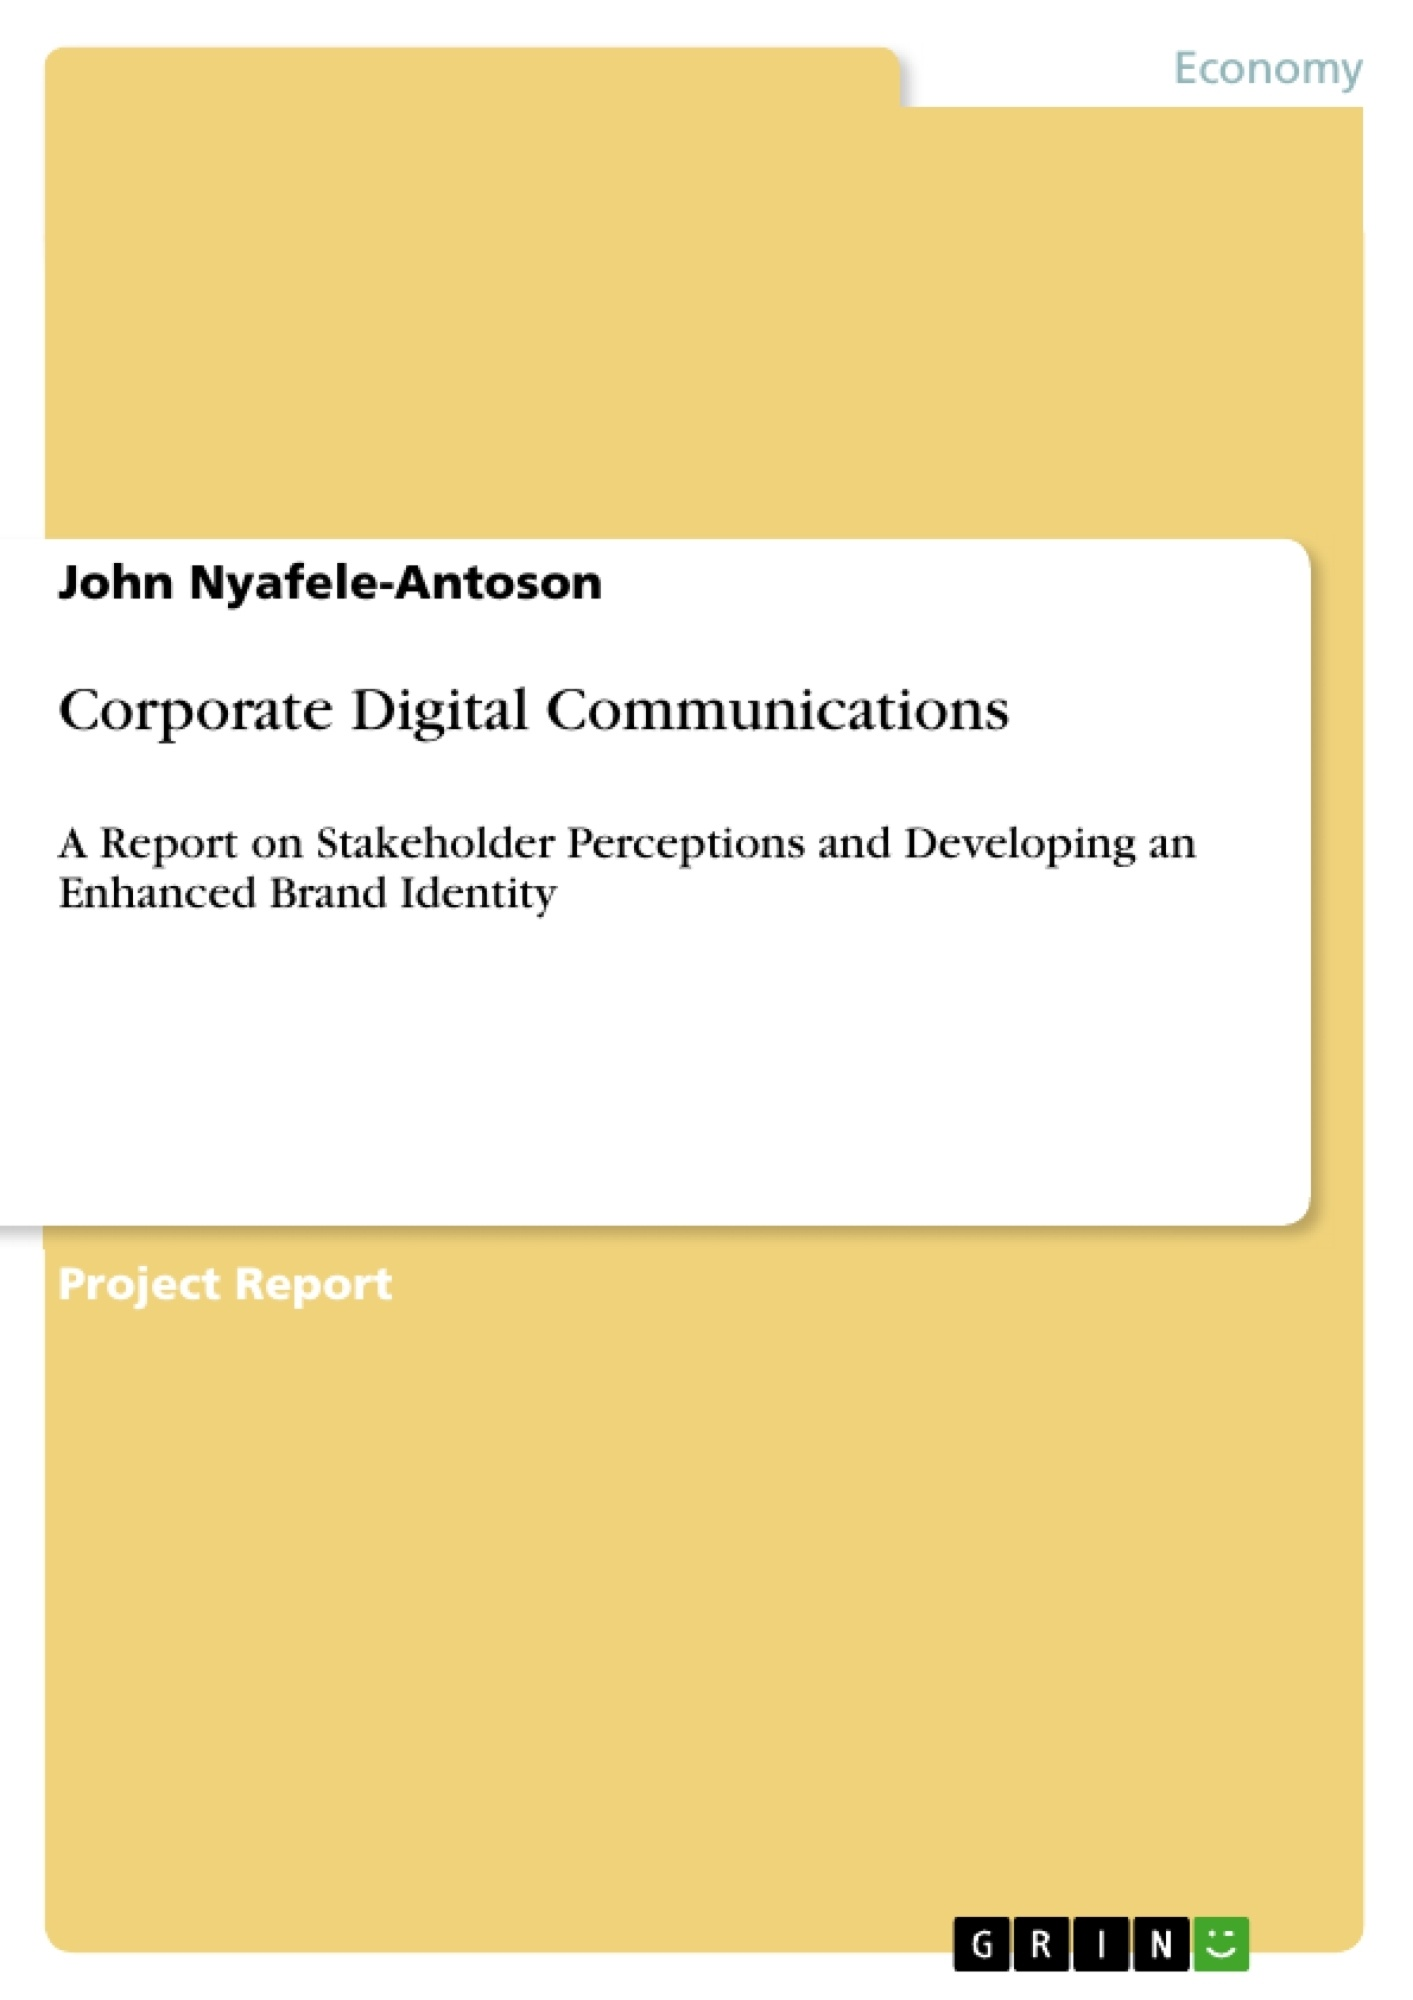 Title: Corporate Digital Communications